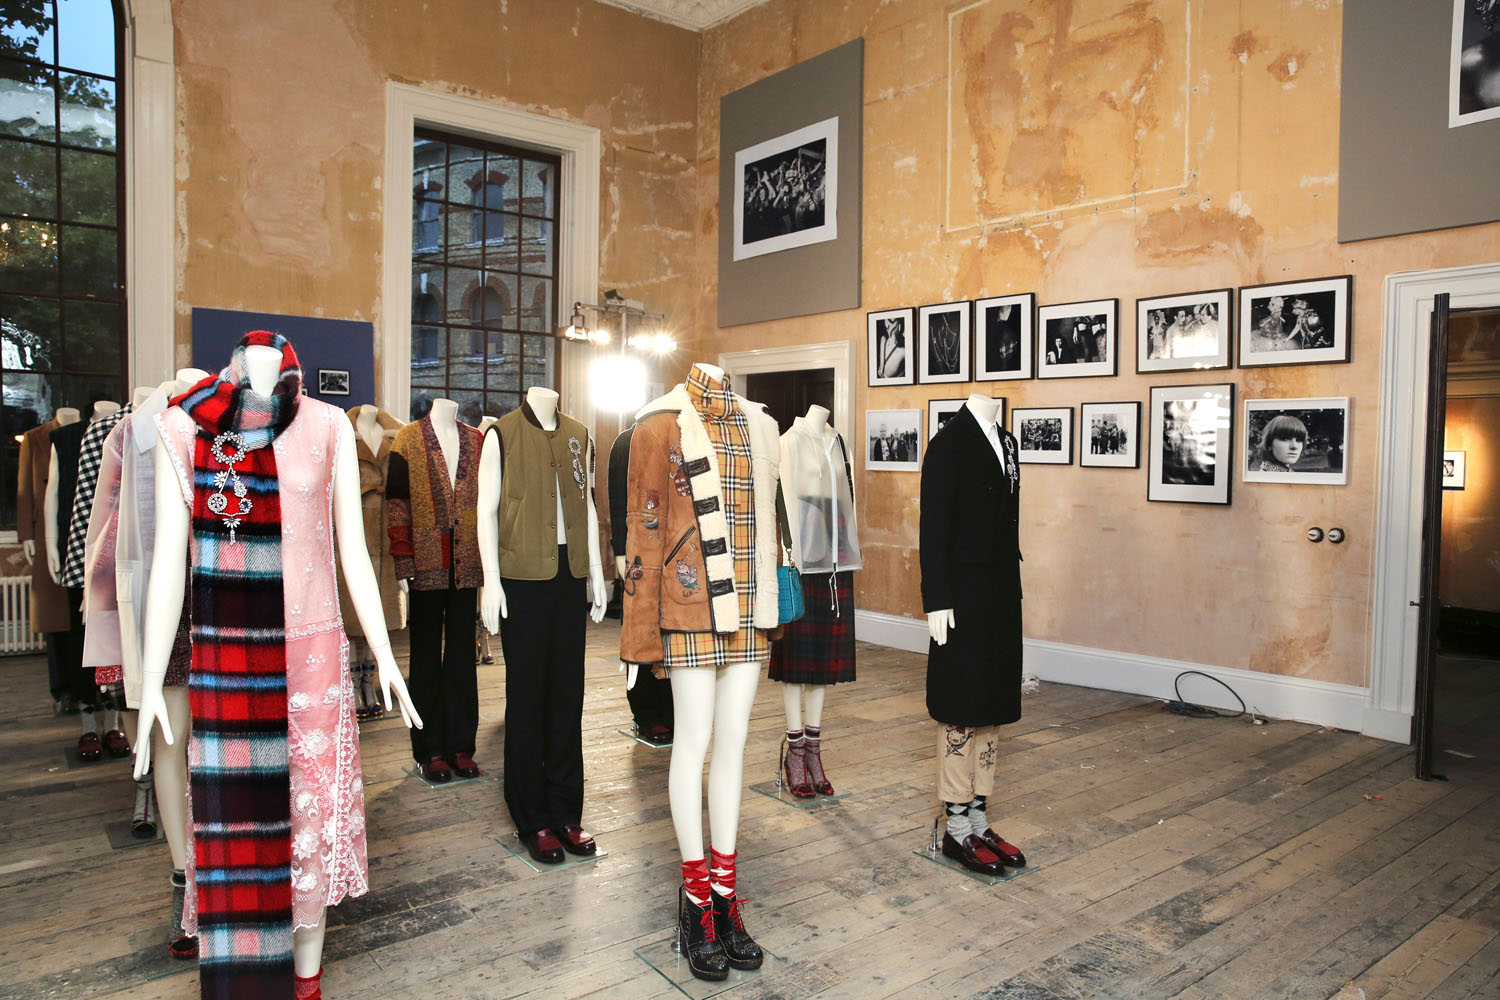 Burberry's photography exhibition explores British ways of life